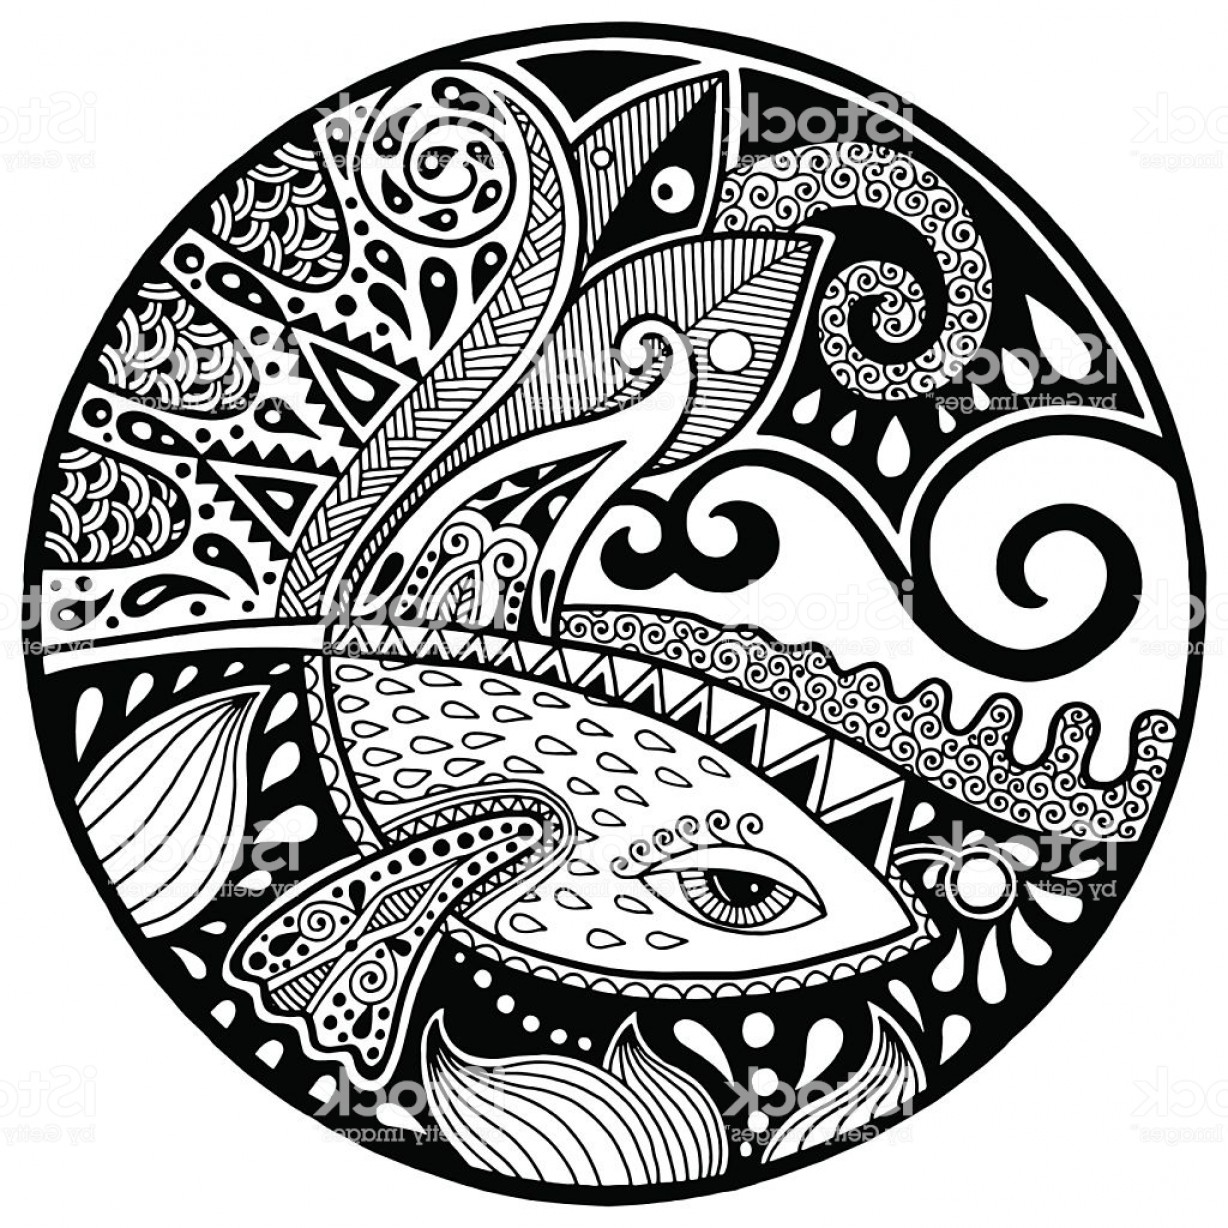 Black And White Circle Vector Graphics: Black White Abstract With Fish And Waves On Circle Gm